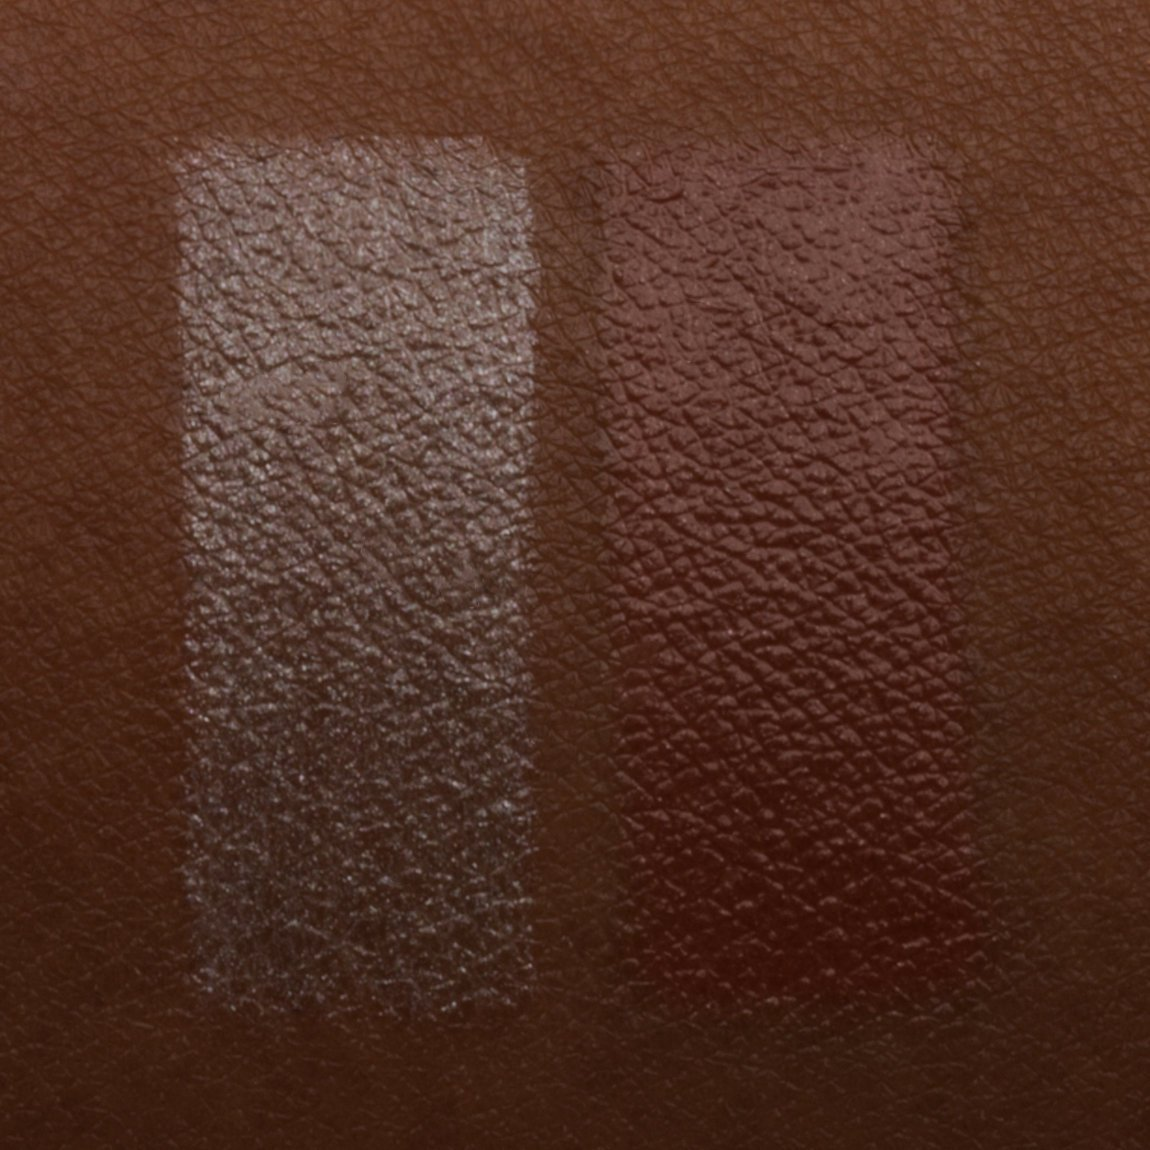 Shade and Illuminate (02 Intensity Two) by TMF Cosmetics (Image #5)